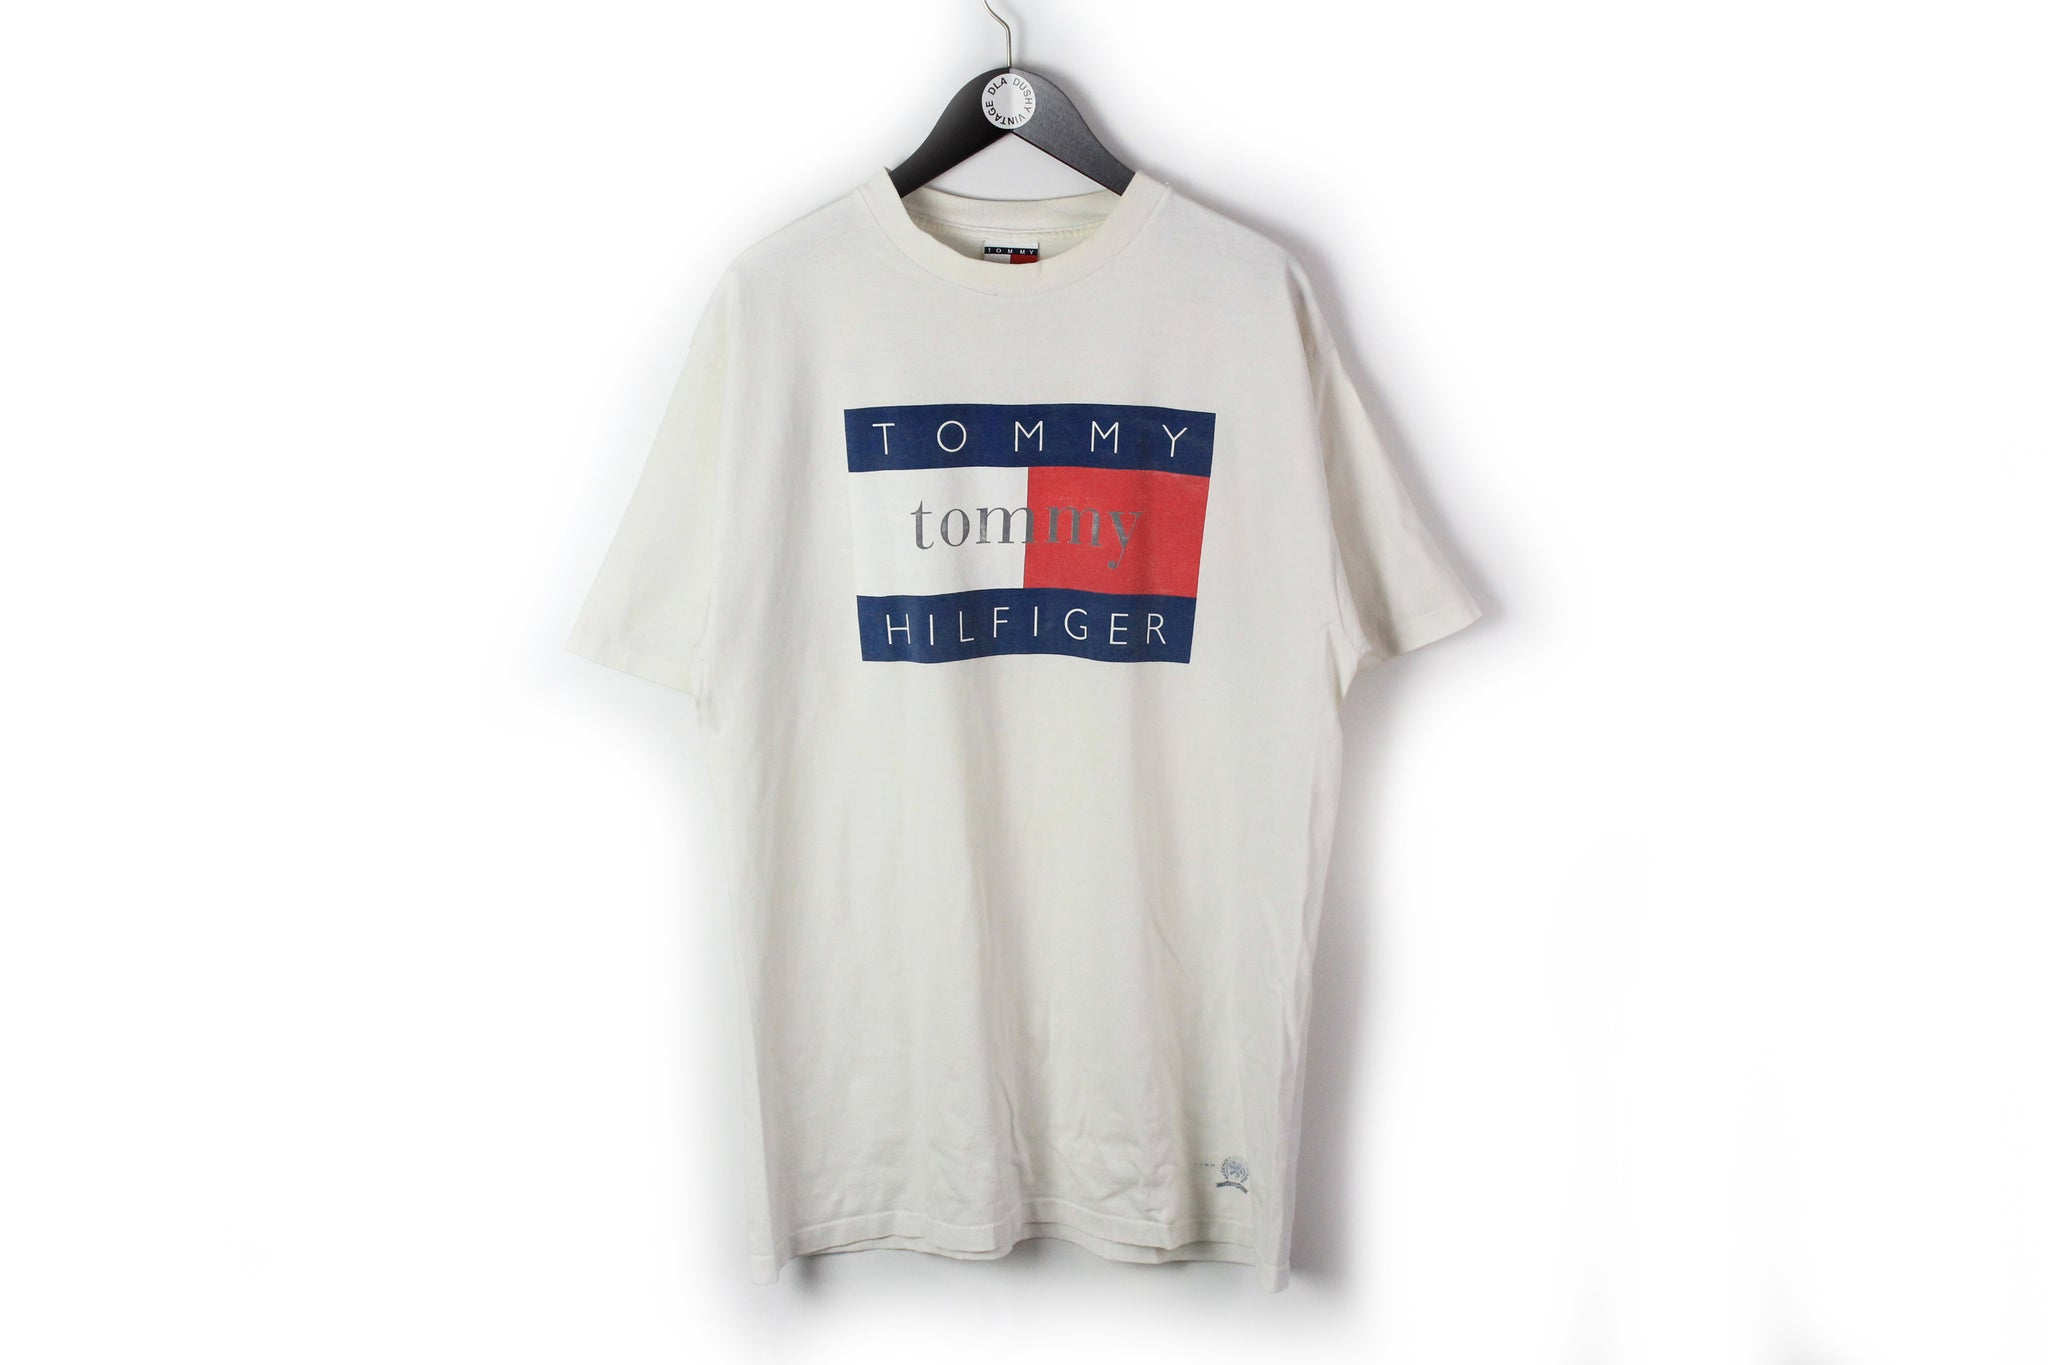 Vintage Tommy Hilfiger T-Shirt XLarge / XXLarge white big logo 90s made in USA cotton tee